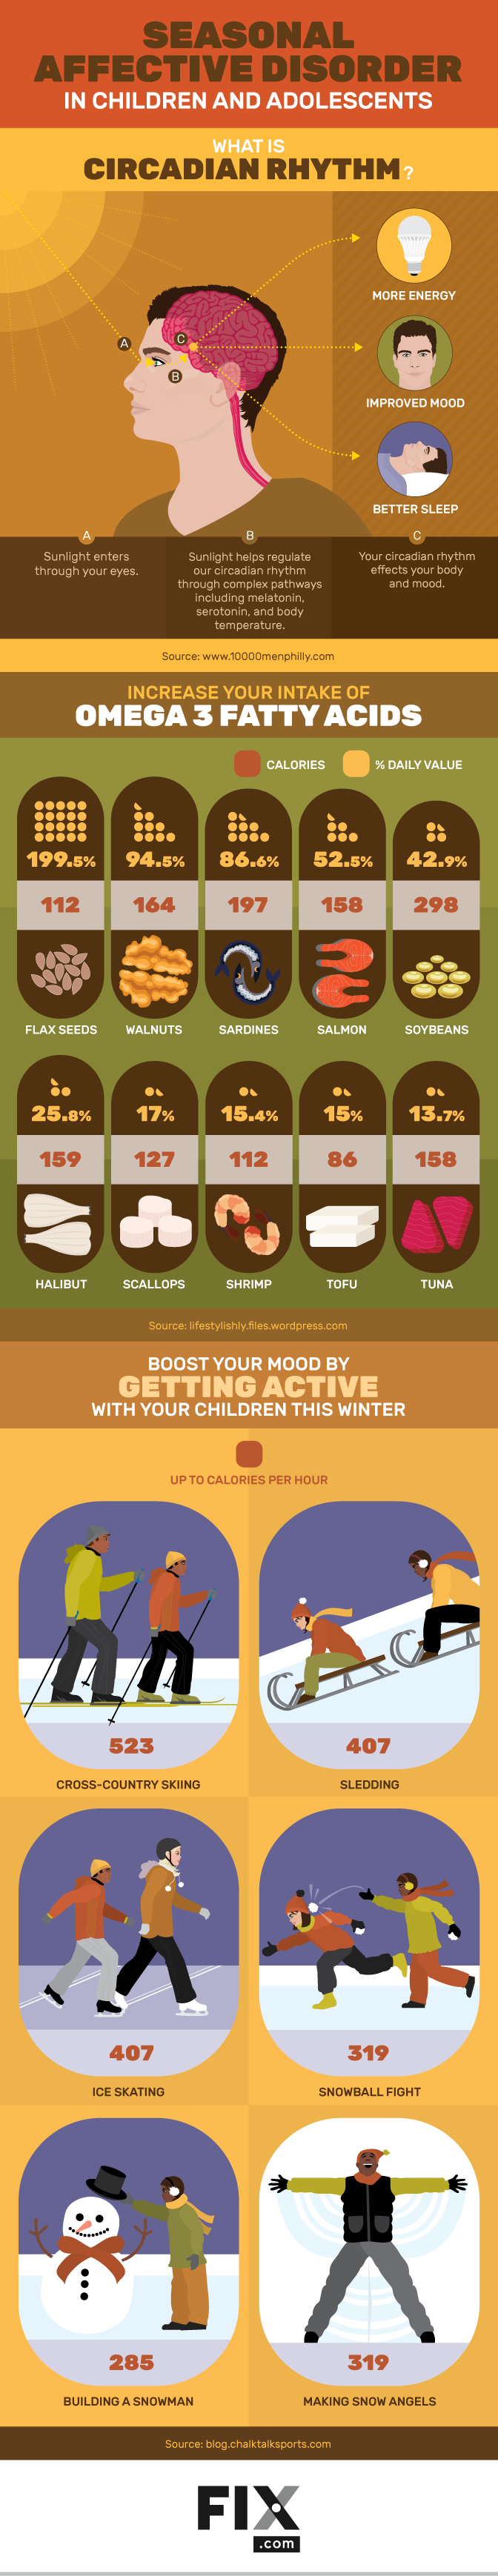 Seasonal Affective Disorder in Children and Adolescents #Infographic